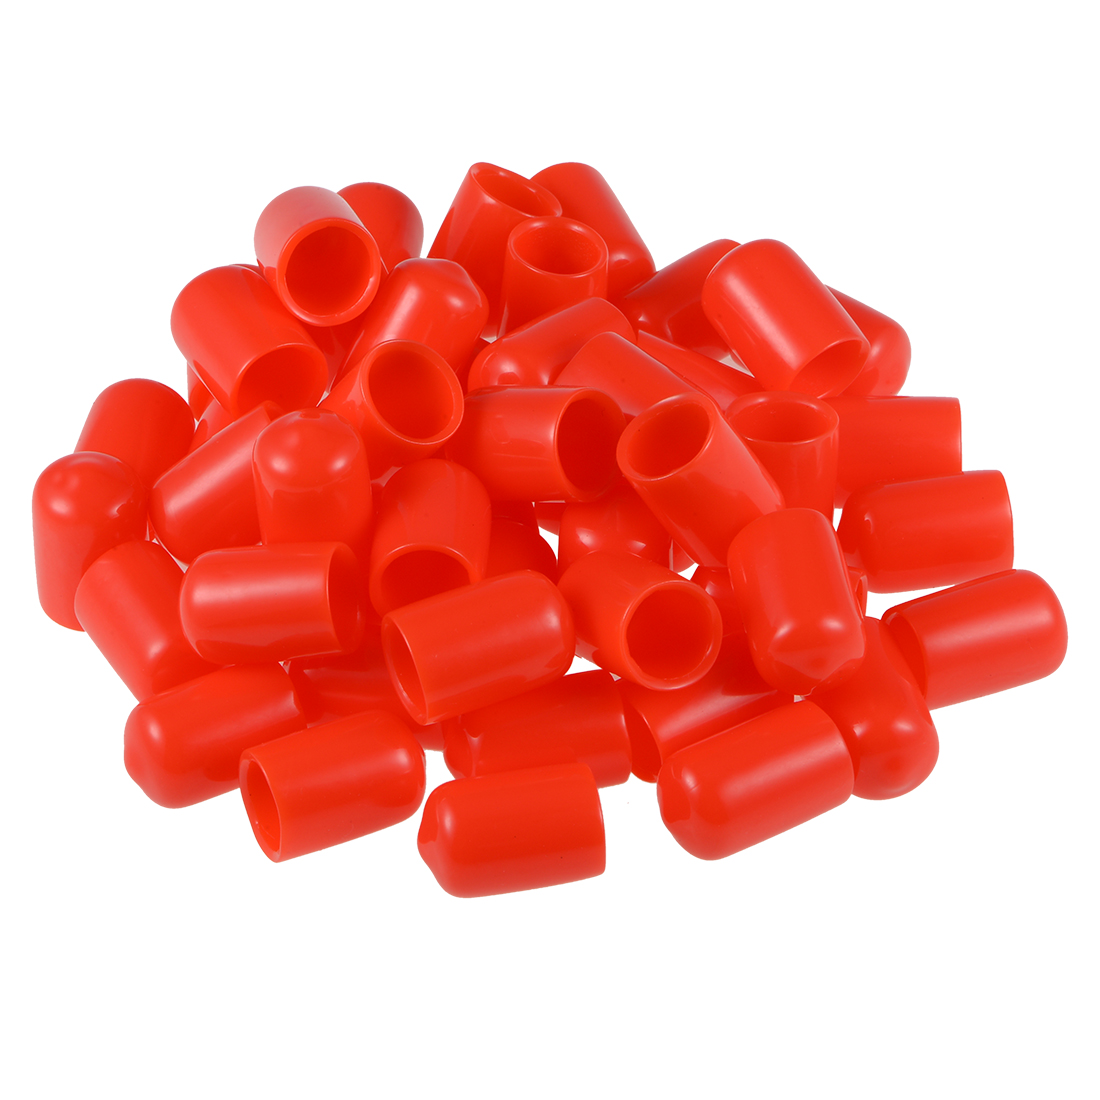 Screw Thread Protectors, 11mm ID 20mm Length Round End Cap Cover Red 50pcs